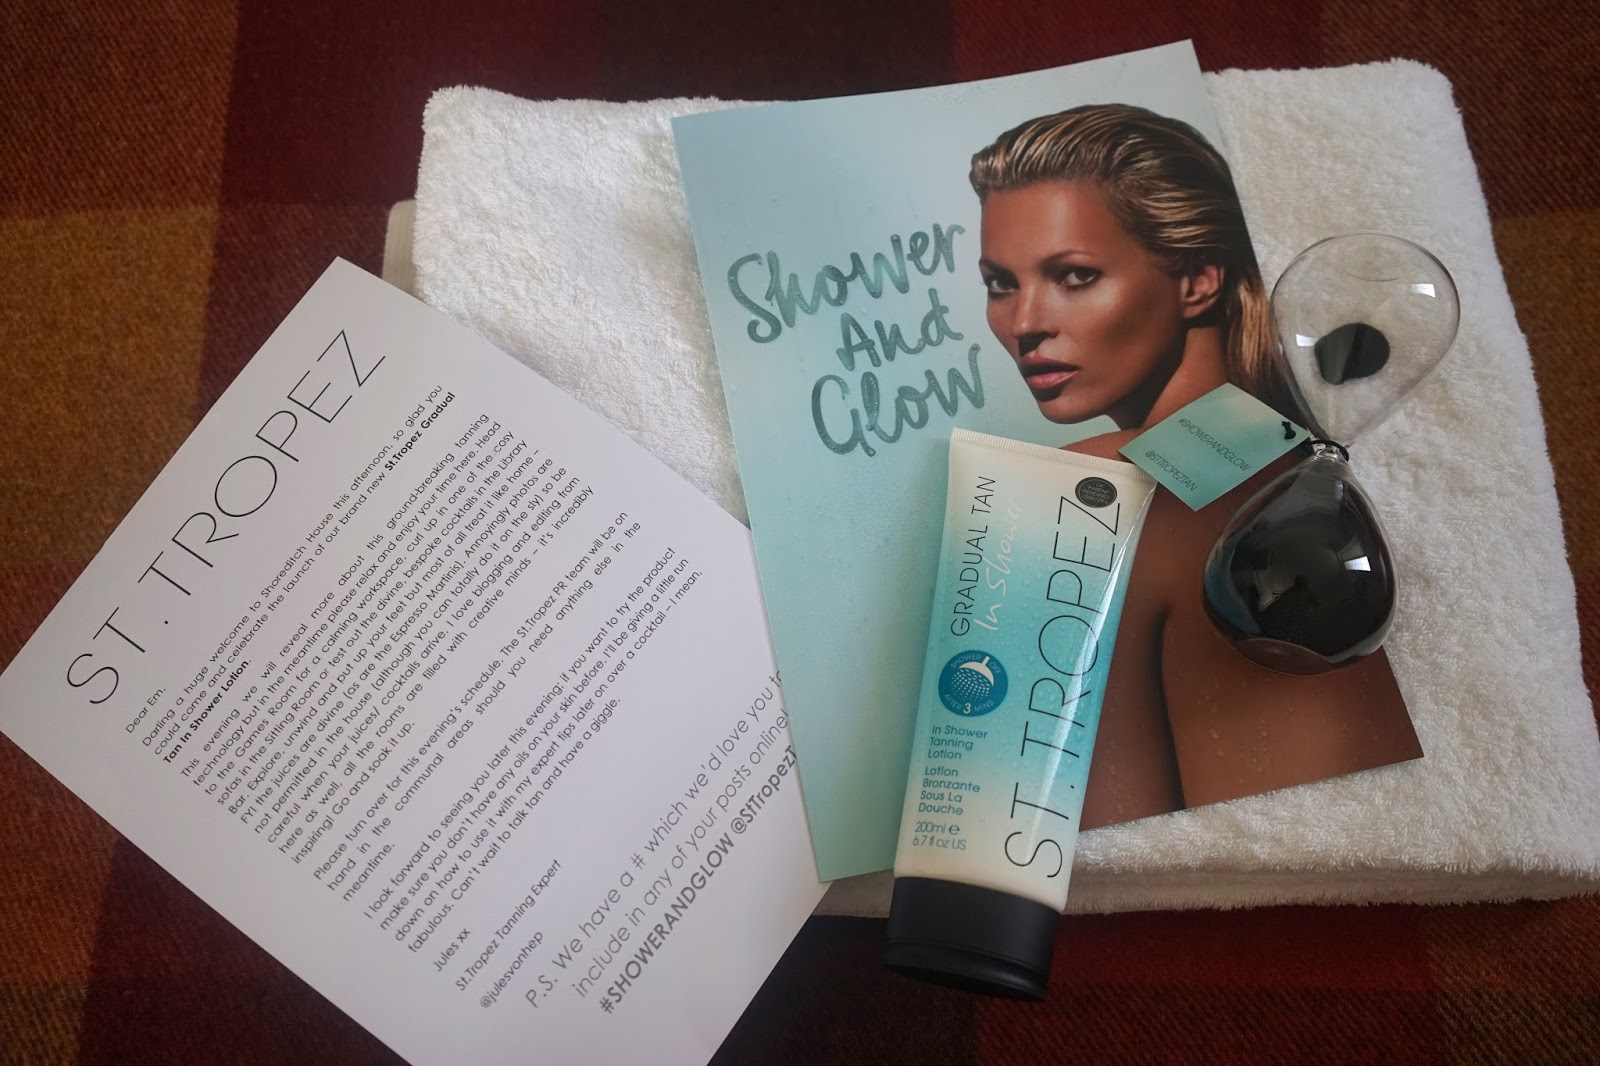 St Tropez Shower and Glow revie